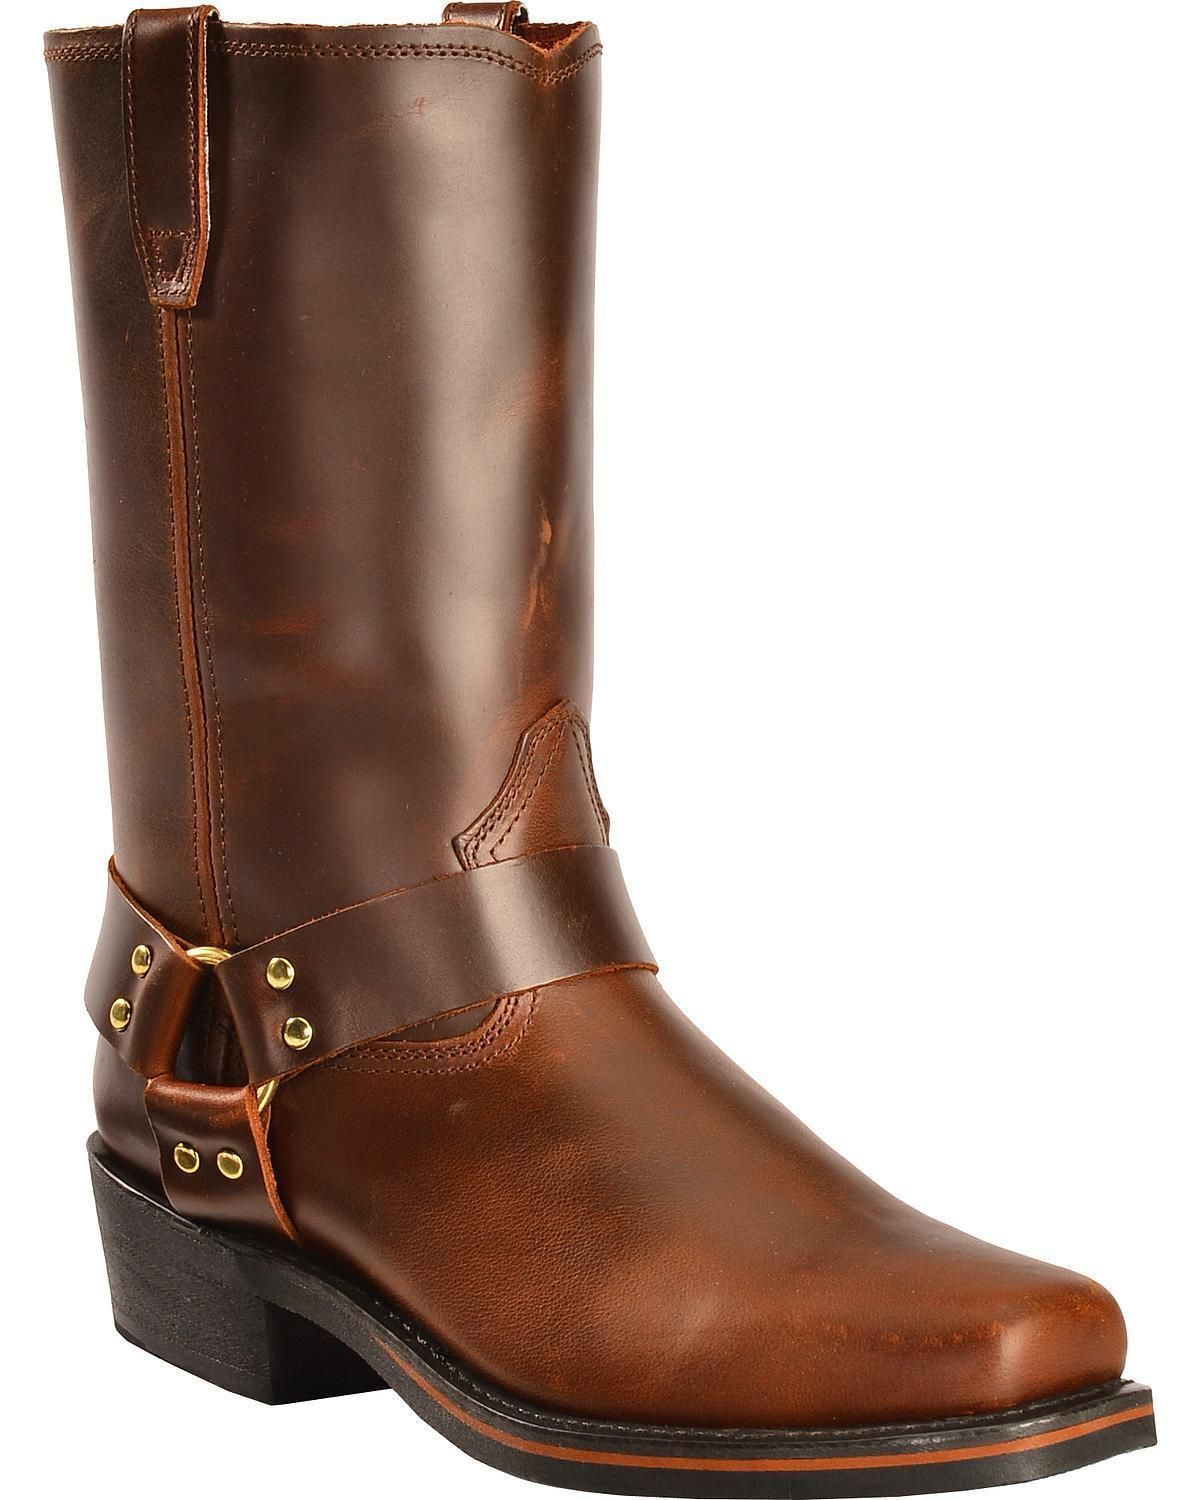 5f1815ab2a4 Dingo Men's Jay Harness Boot Snoot Toe - DI19056 | Products | Dingo ...